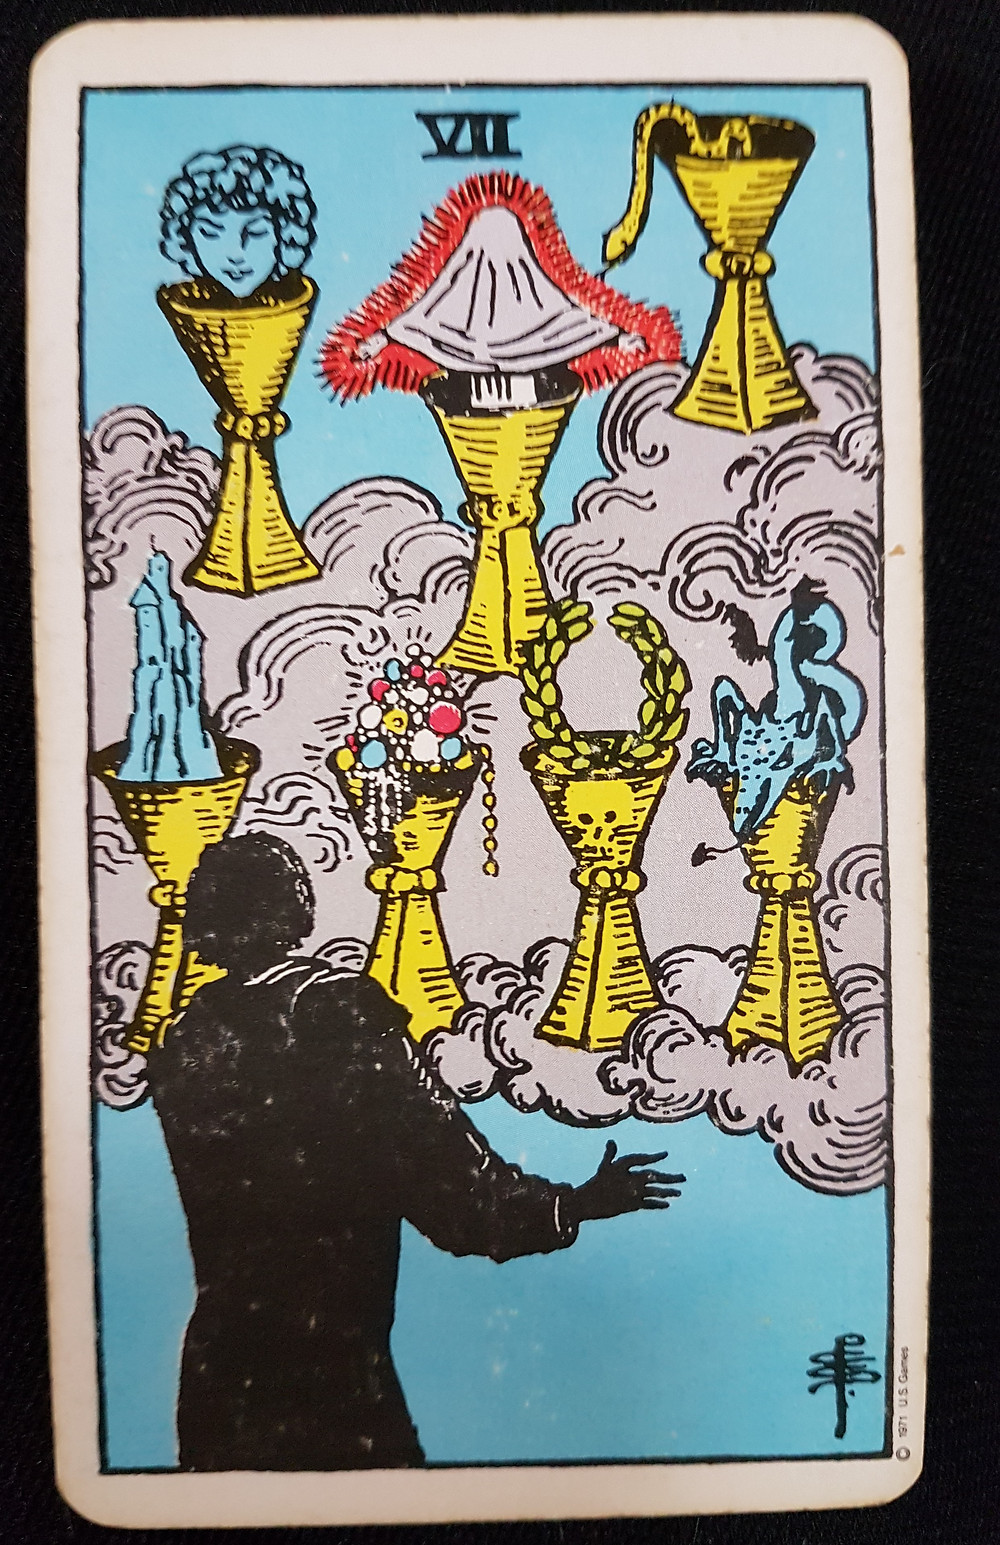 7 of Cups - lynsreadings.com